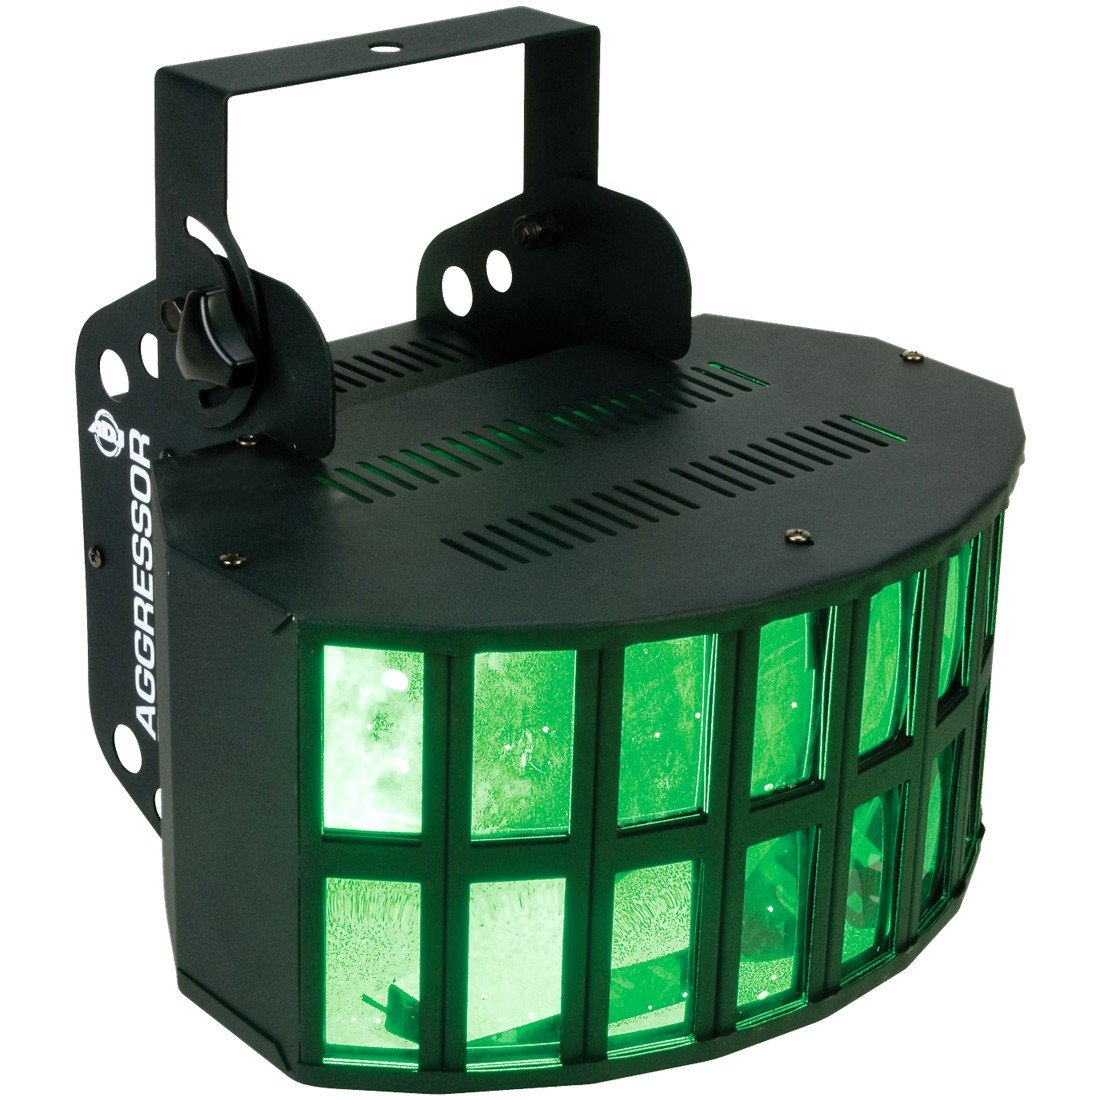 Amazon.com American Dj Aggressor Tri Led Led Powered Effect Light Musical Instruments  sc 1 st  Amazon.com & Amazon.com: American Dj Aggressor Tri Led Led Powered Effect Light ... azcodes.com